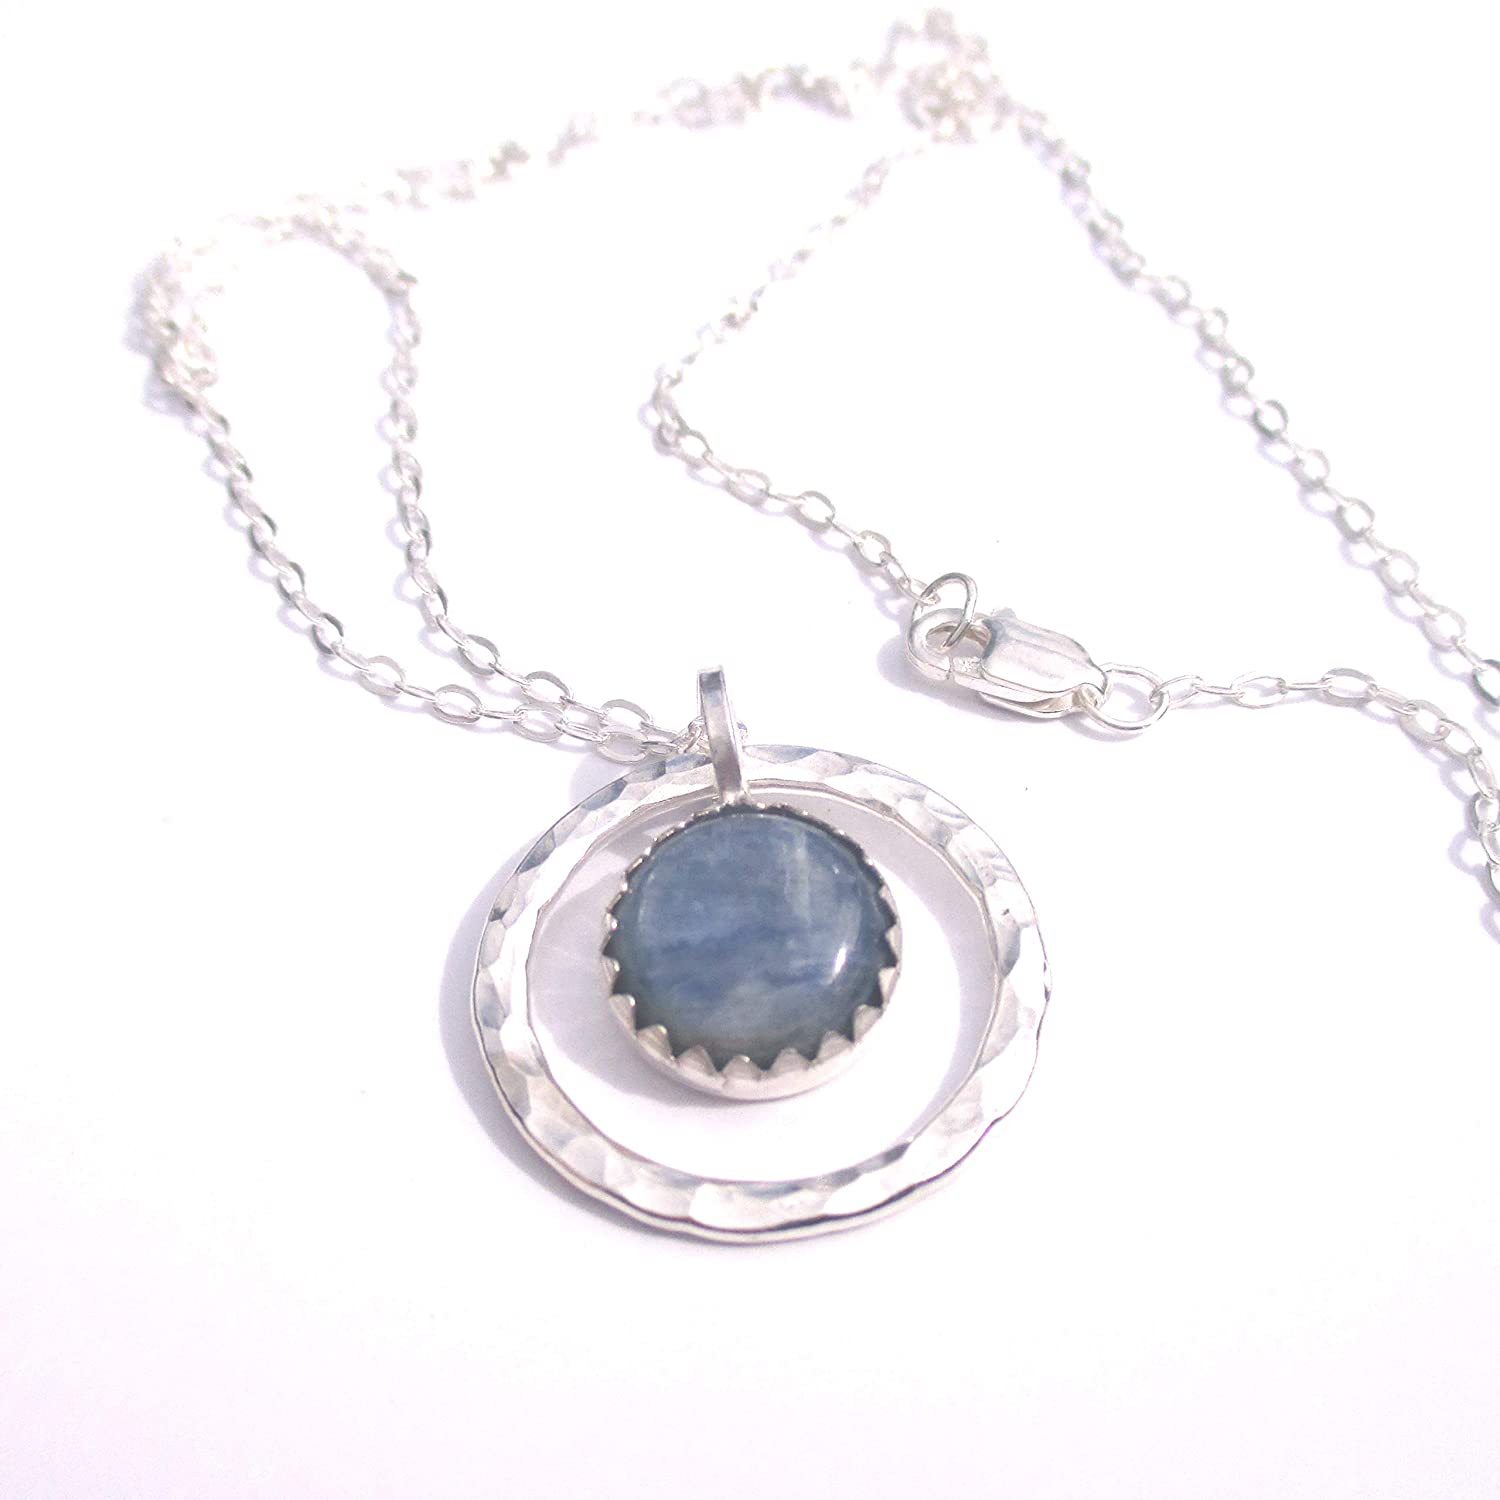 Kyanite Necklace with Hammered Silver Circle Pendant